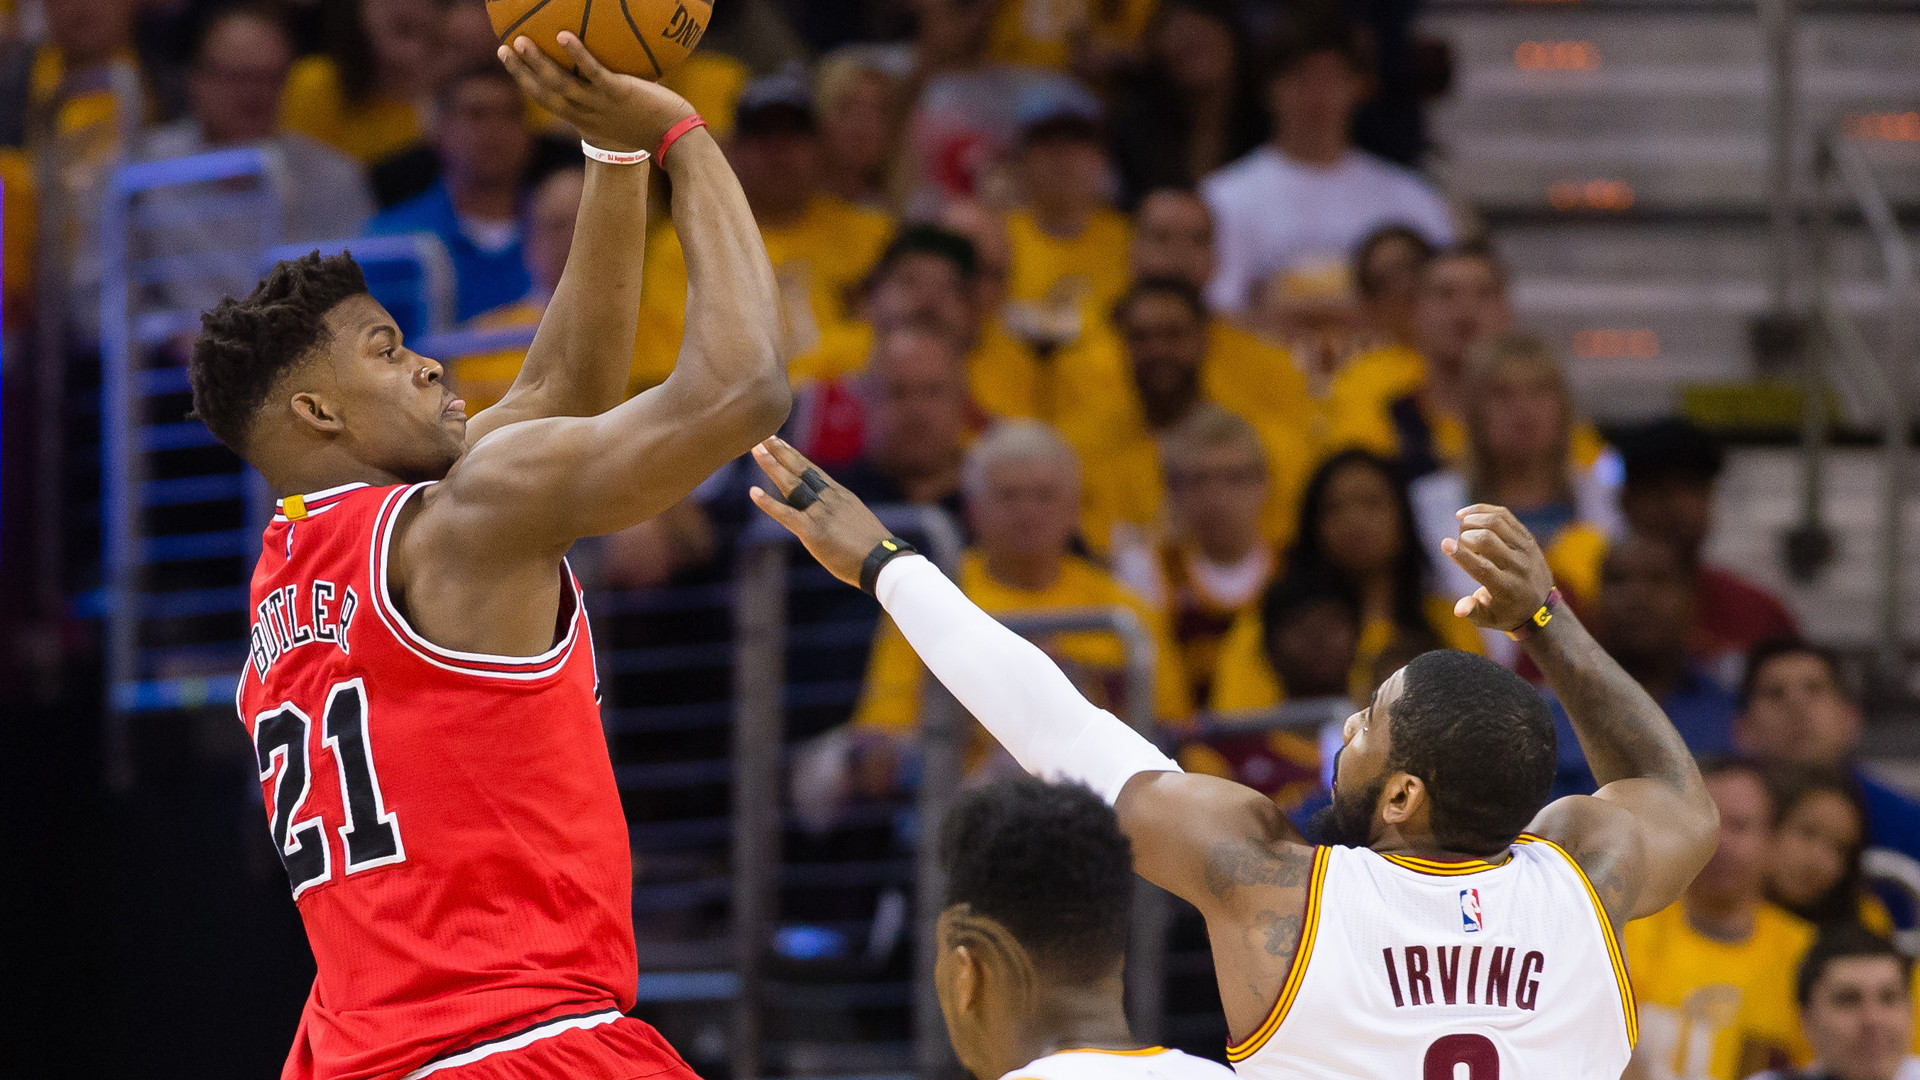 Report: Bulls' Jimmy Butler to win NBA's Most Improved Player award | NBA |  Sporting News